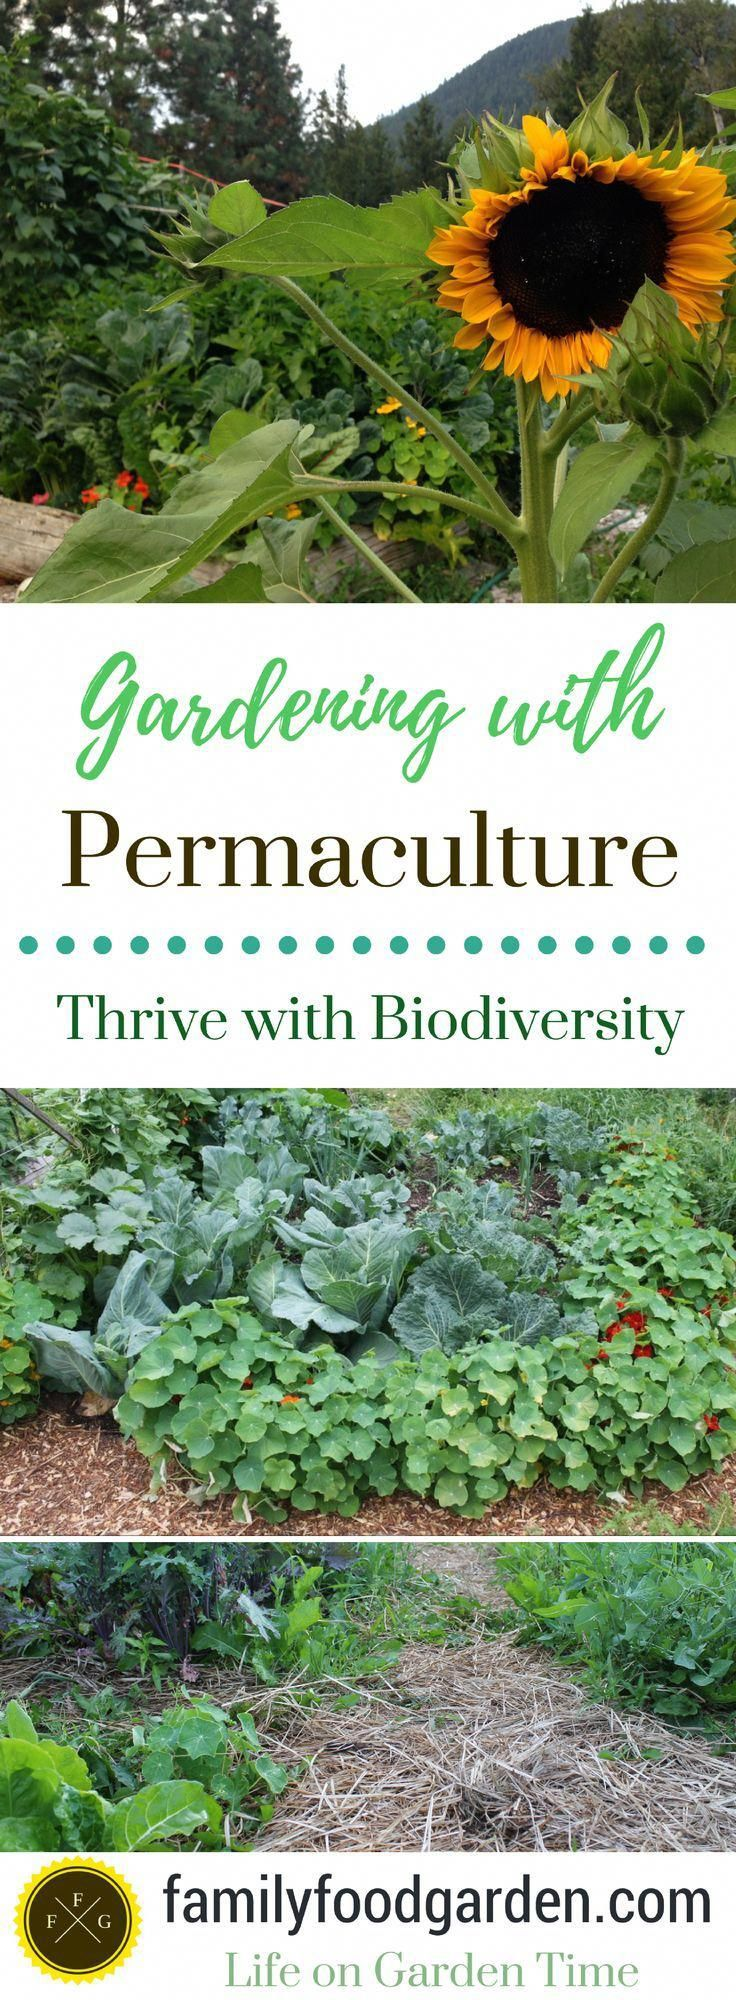 Grow a Permaculture Garden (Less Work + More Yields